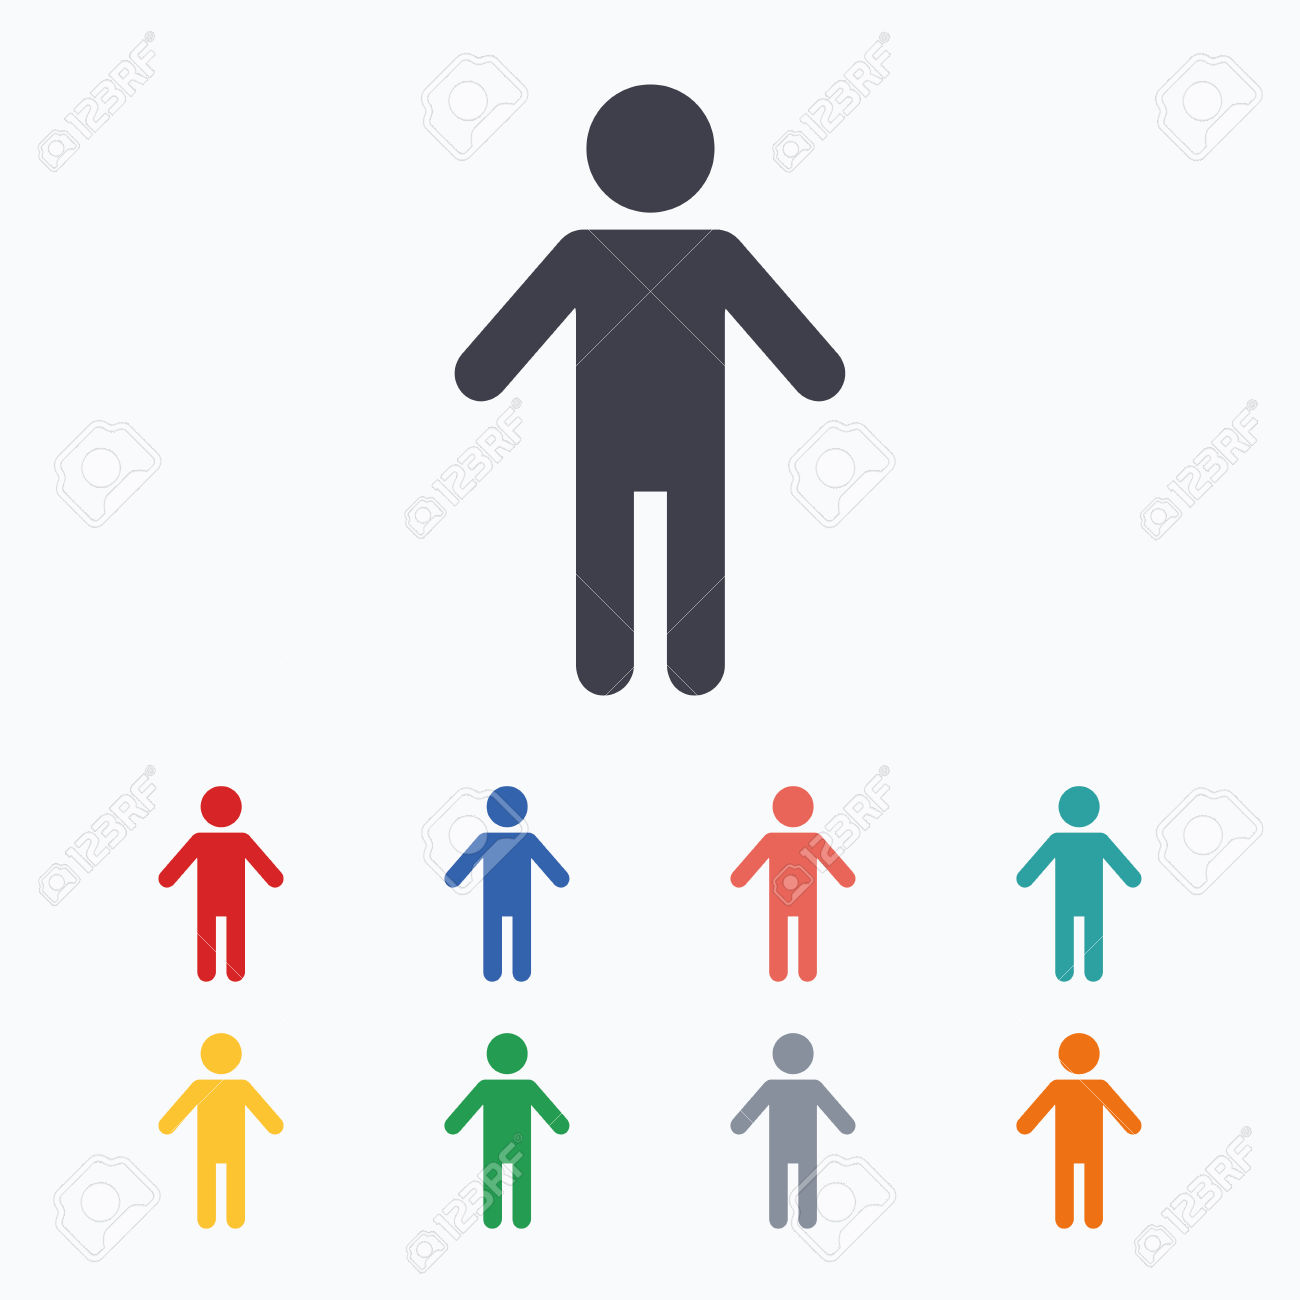 Human clipart human symbol. Person icon free download